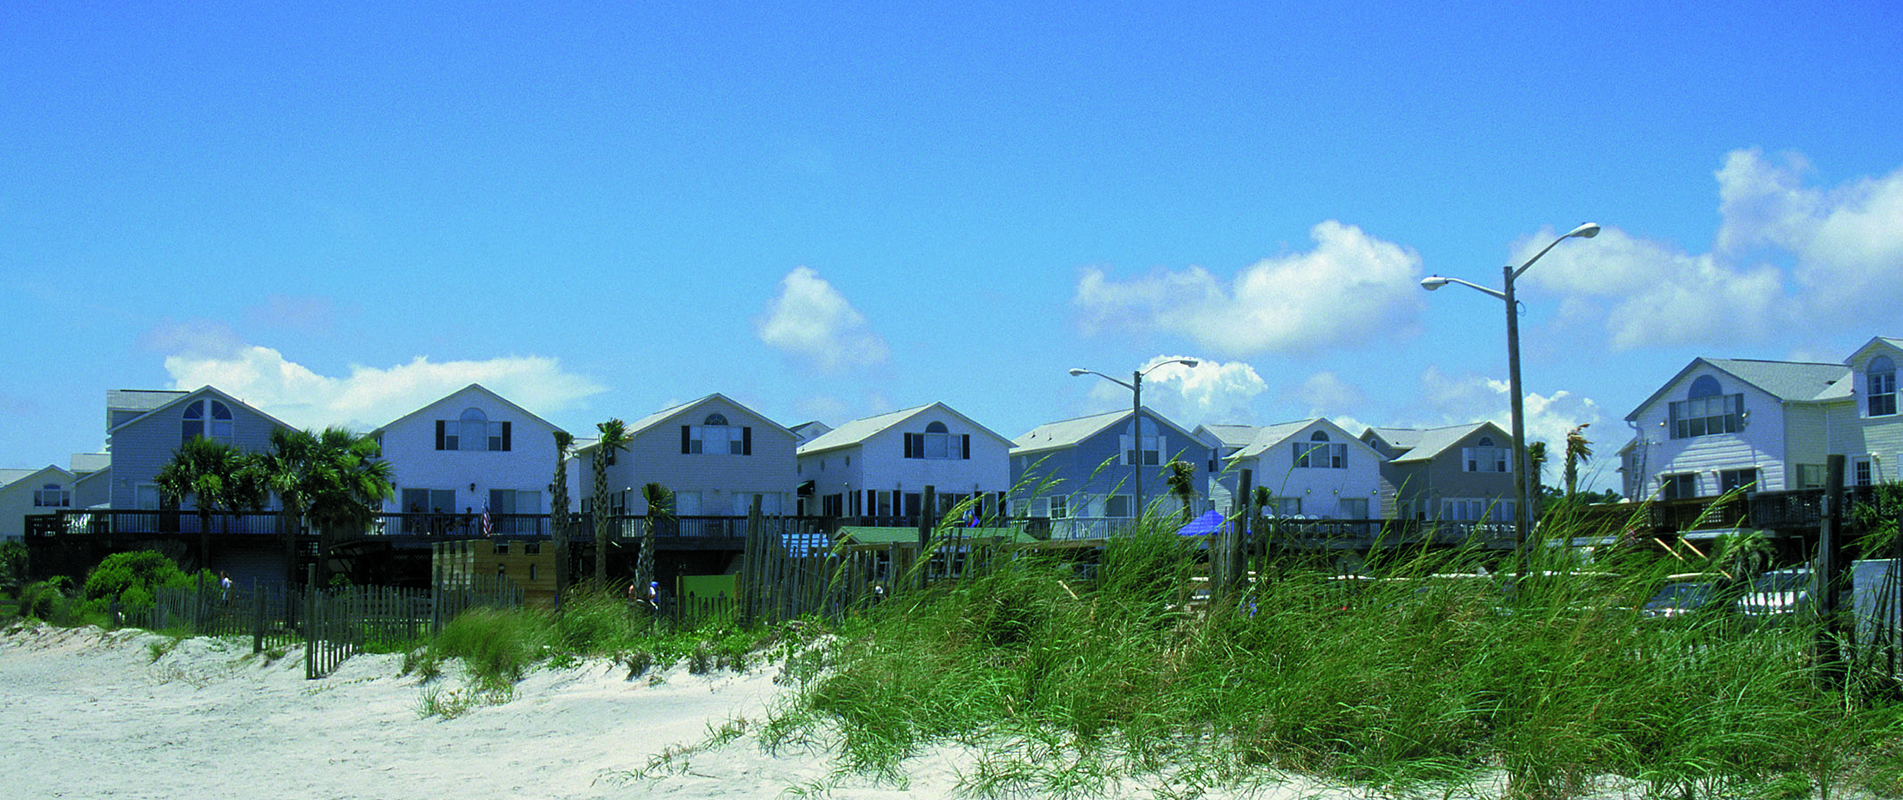 Vacation Rentals Myrtle Beach At Ocean Lakes On Oceanfront